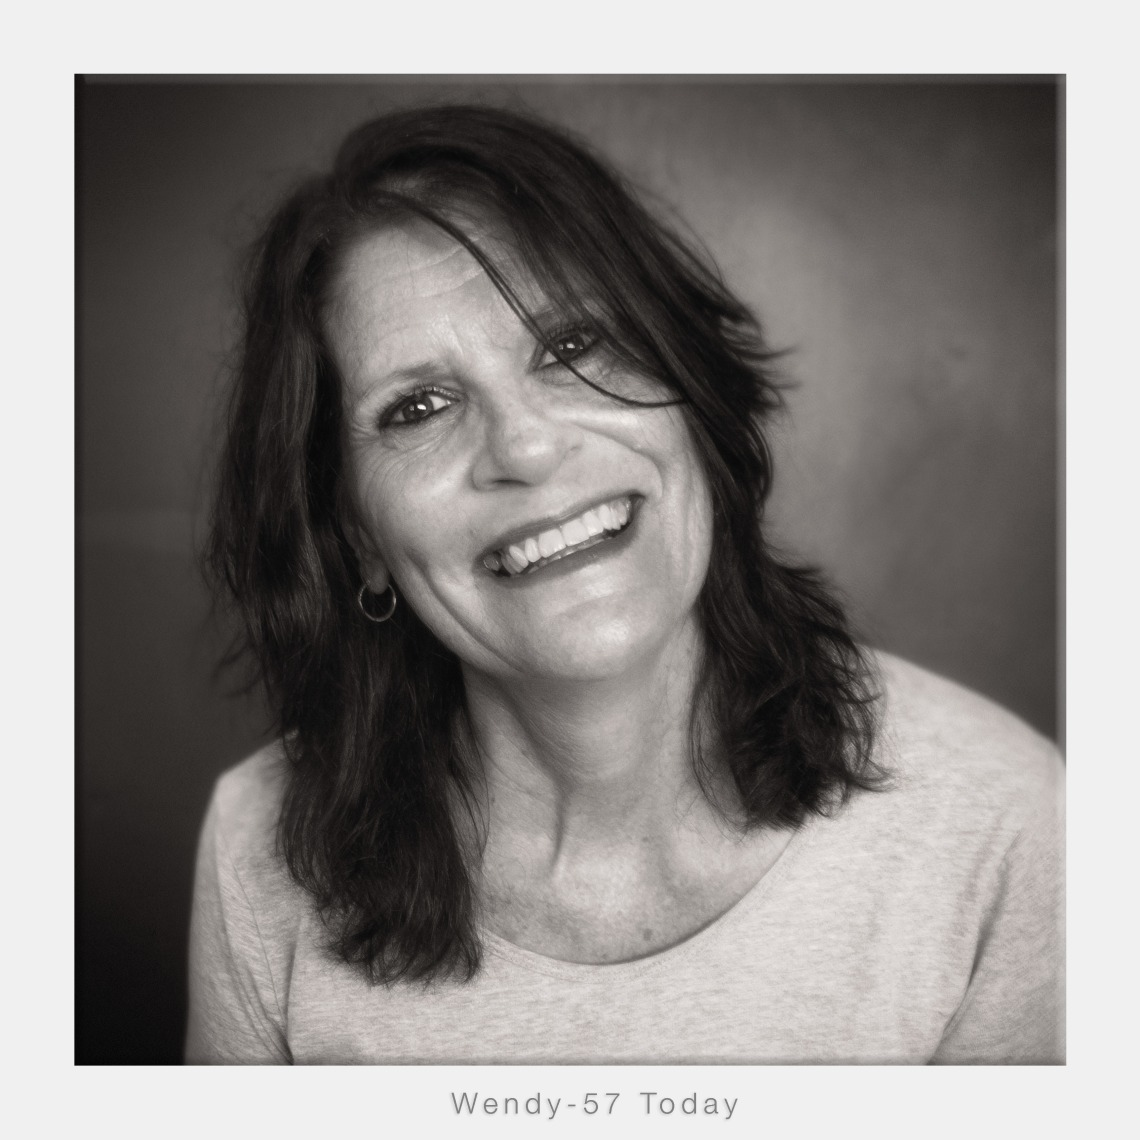 Wendy 57 Today